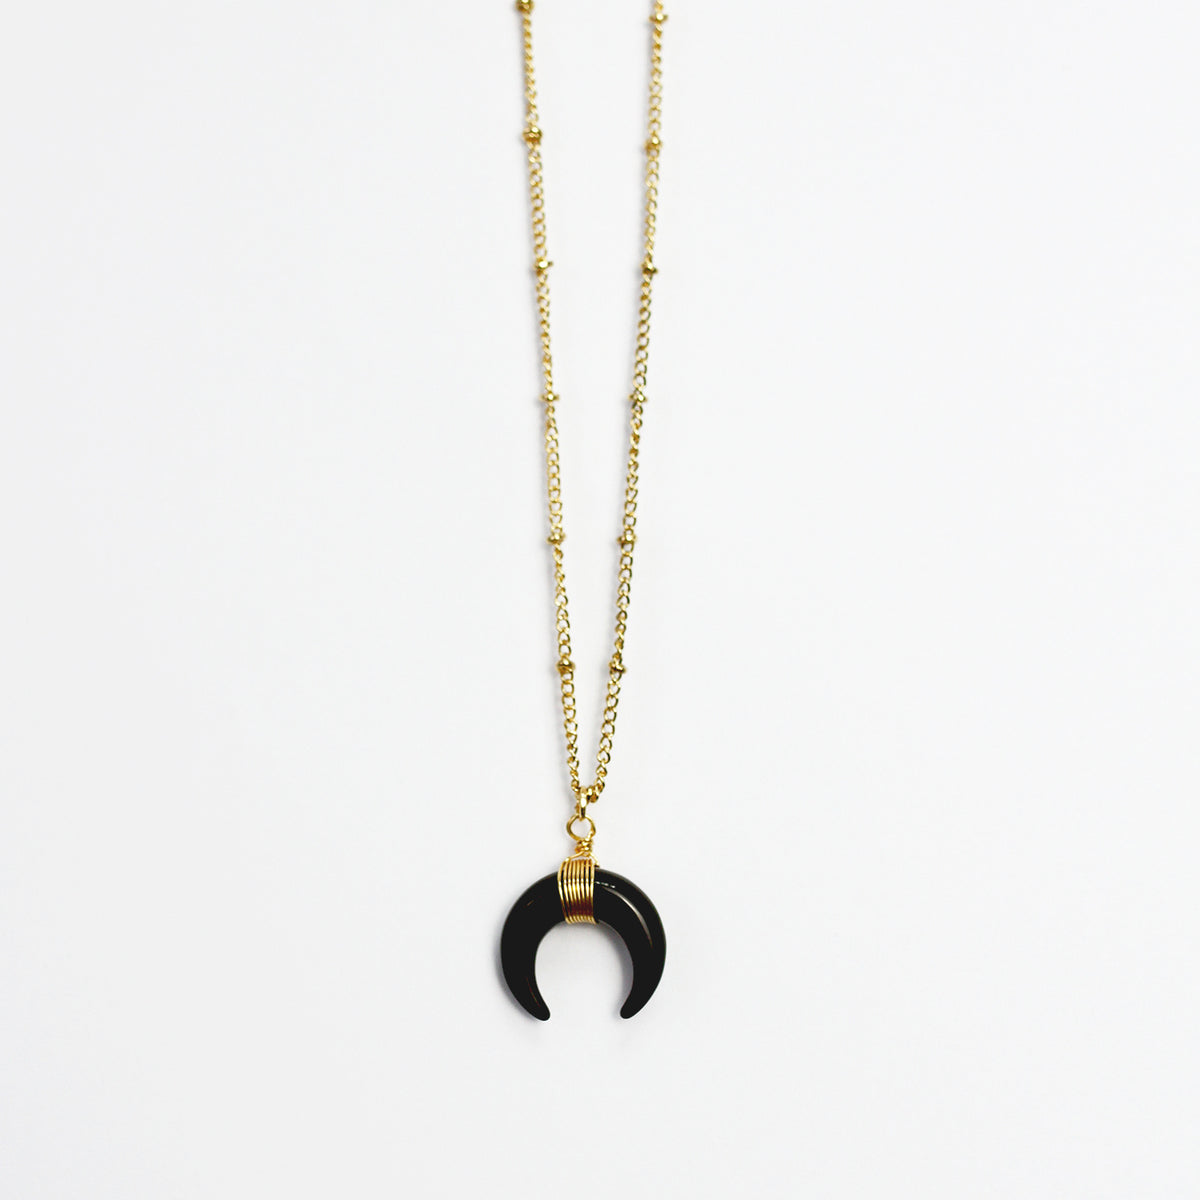 Handmade Double Horn Crescent Pendant Beaded Necklace - worthtryit.com